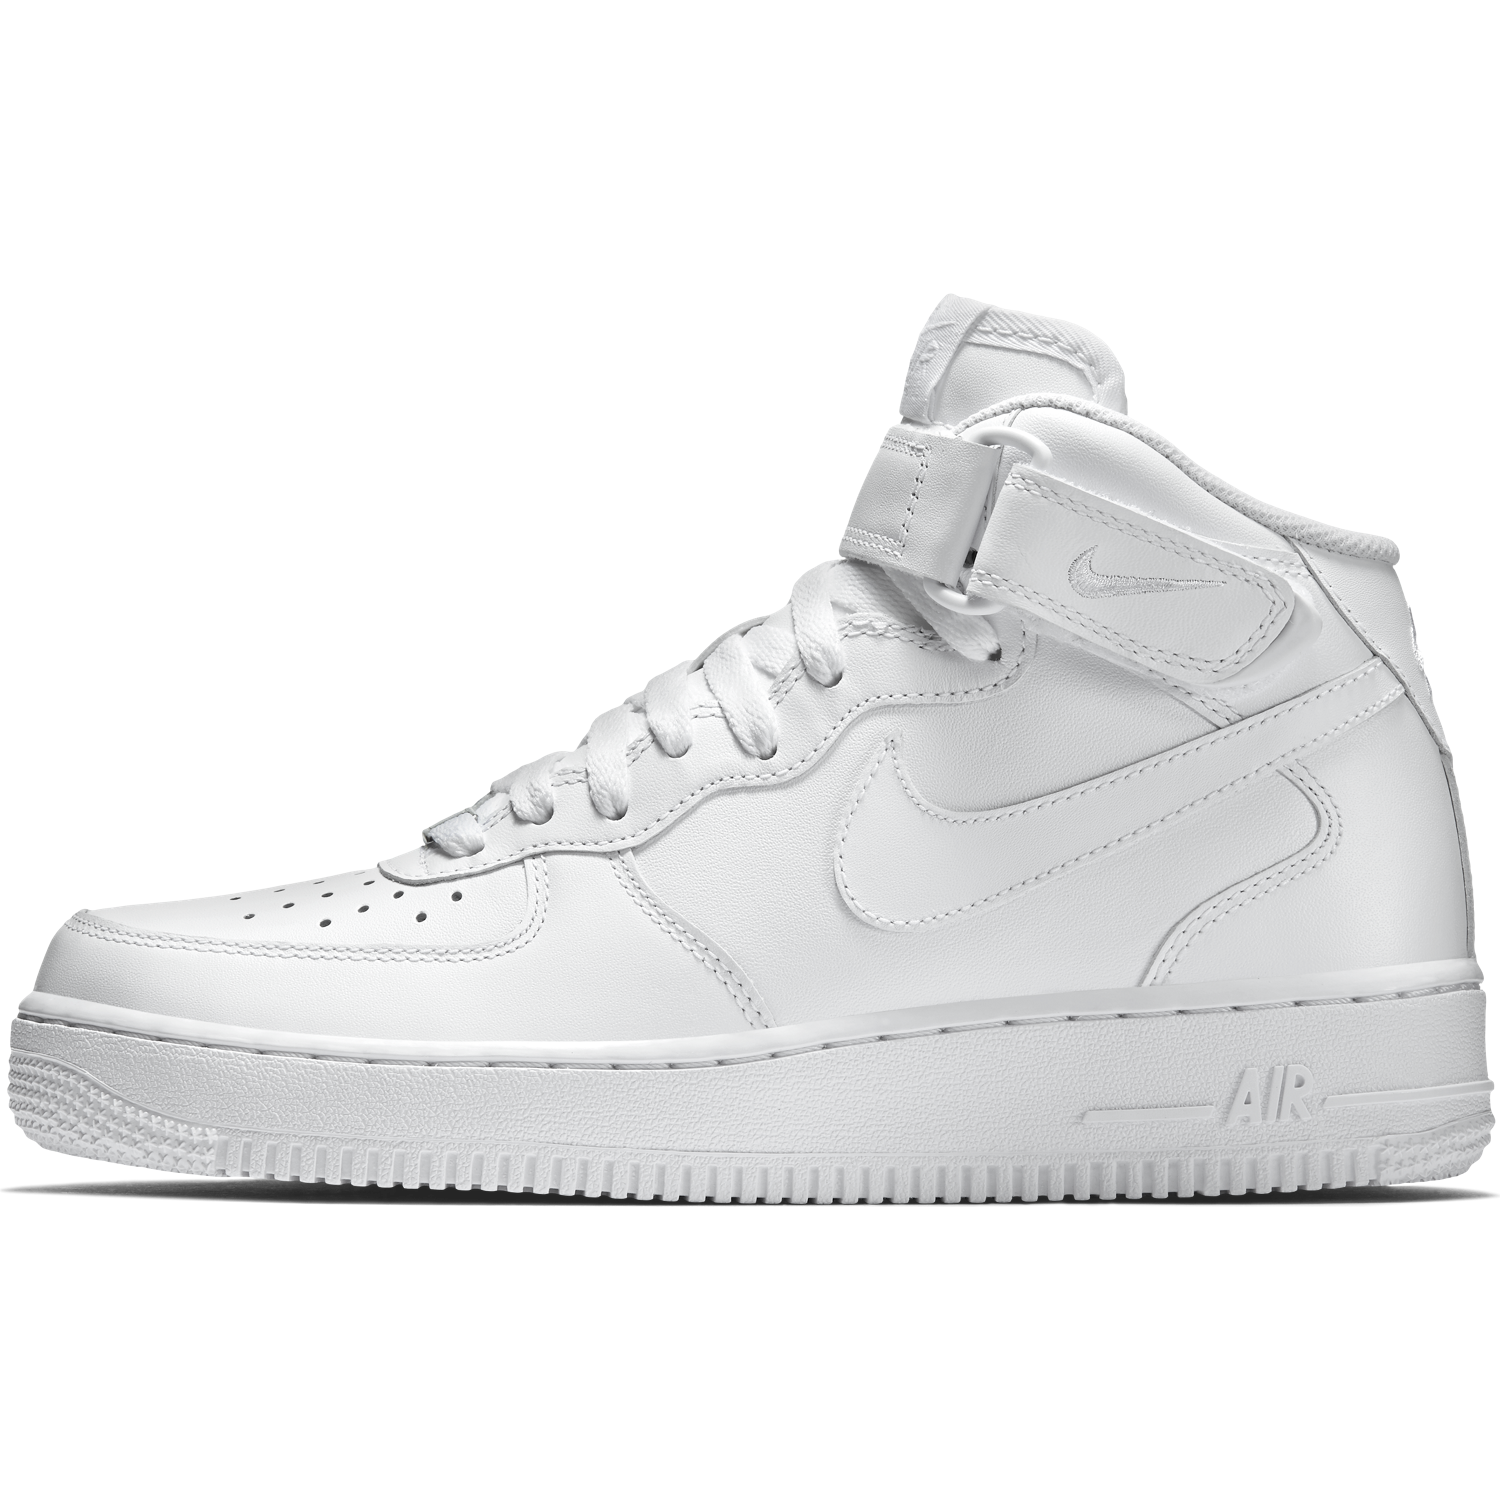 Nike air force 1 mid '07 LV8 bialy